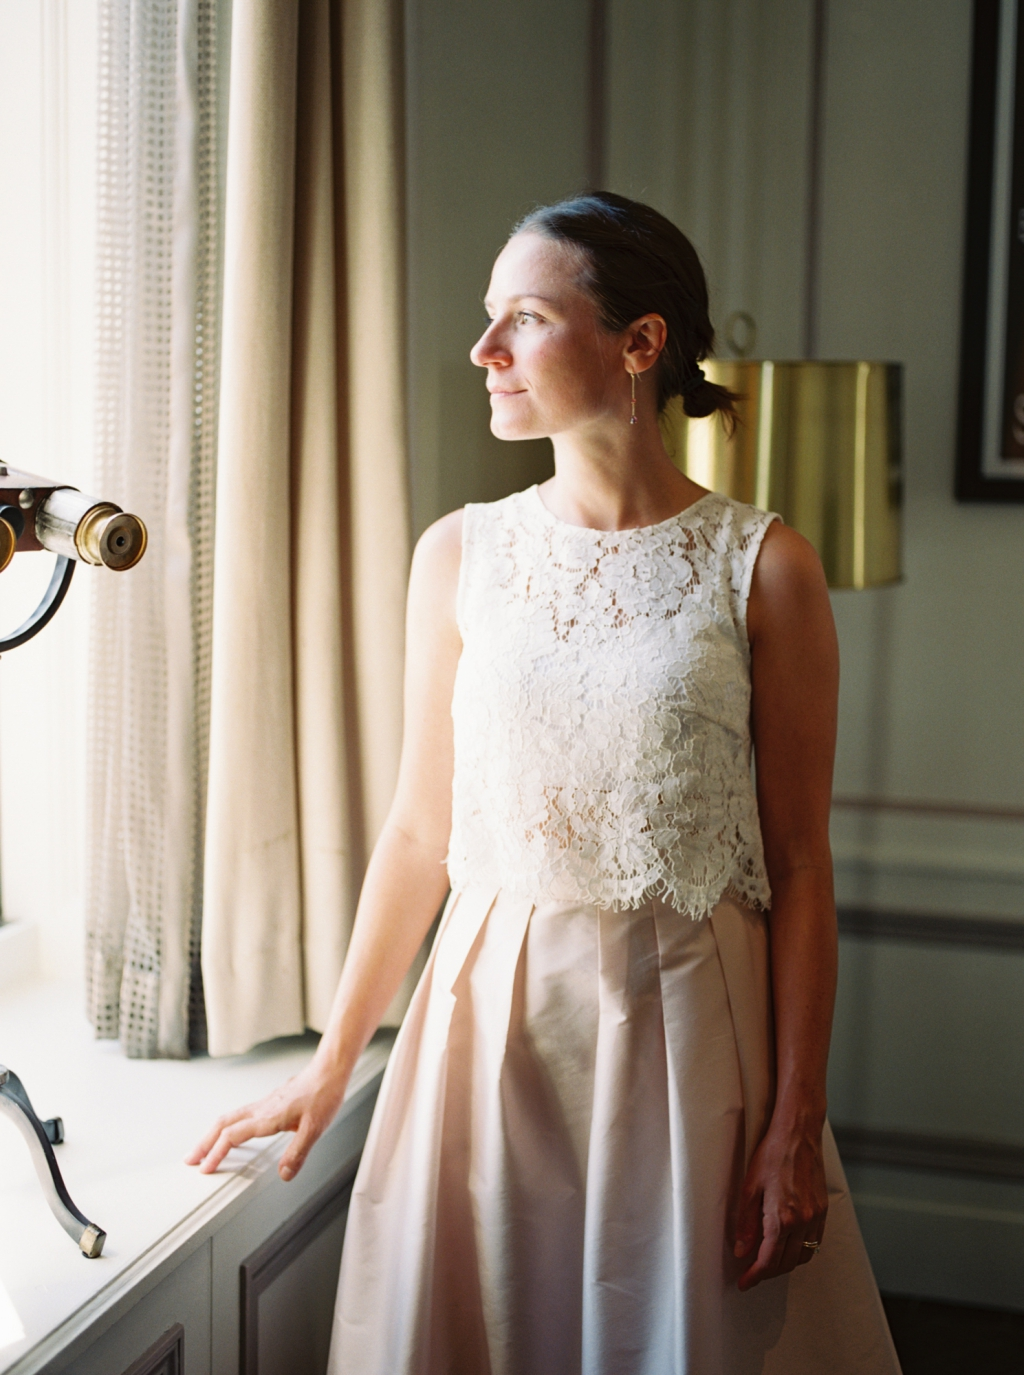 haley-richter-photography-intimate-summer-wedding-palomar-hotel-old-city-philadelphia-177